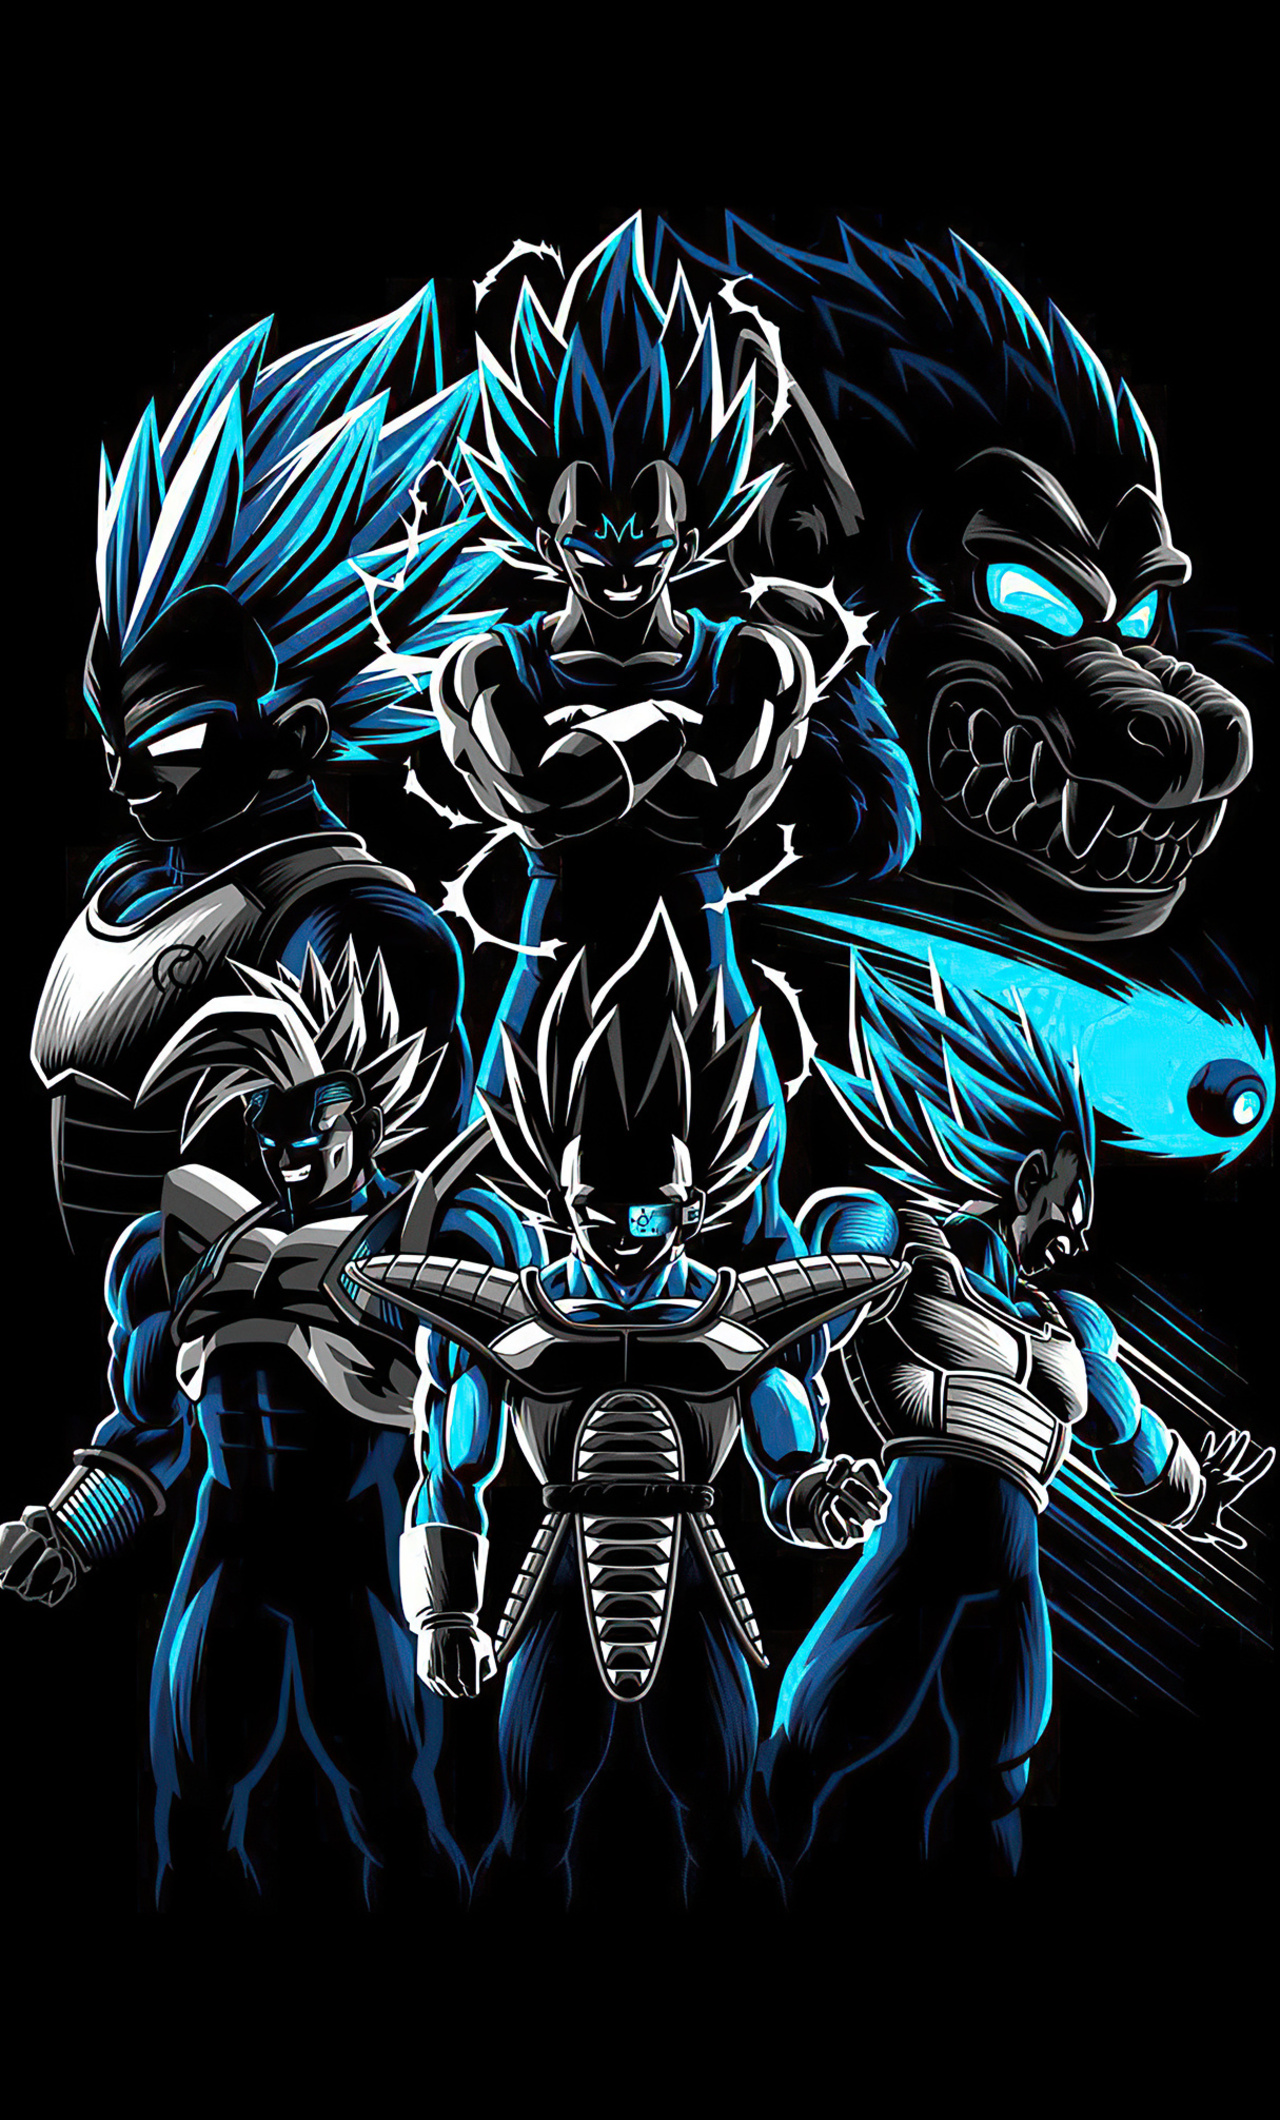 1280x2120 Dragon Ball Z Team 4k Iphone 6 Hd 4k Wallpapers Images Backgrounds Photos And Pictures